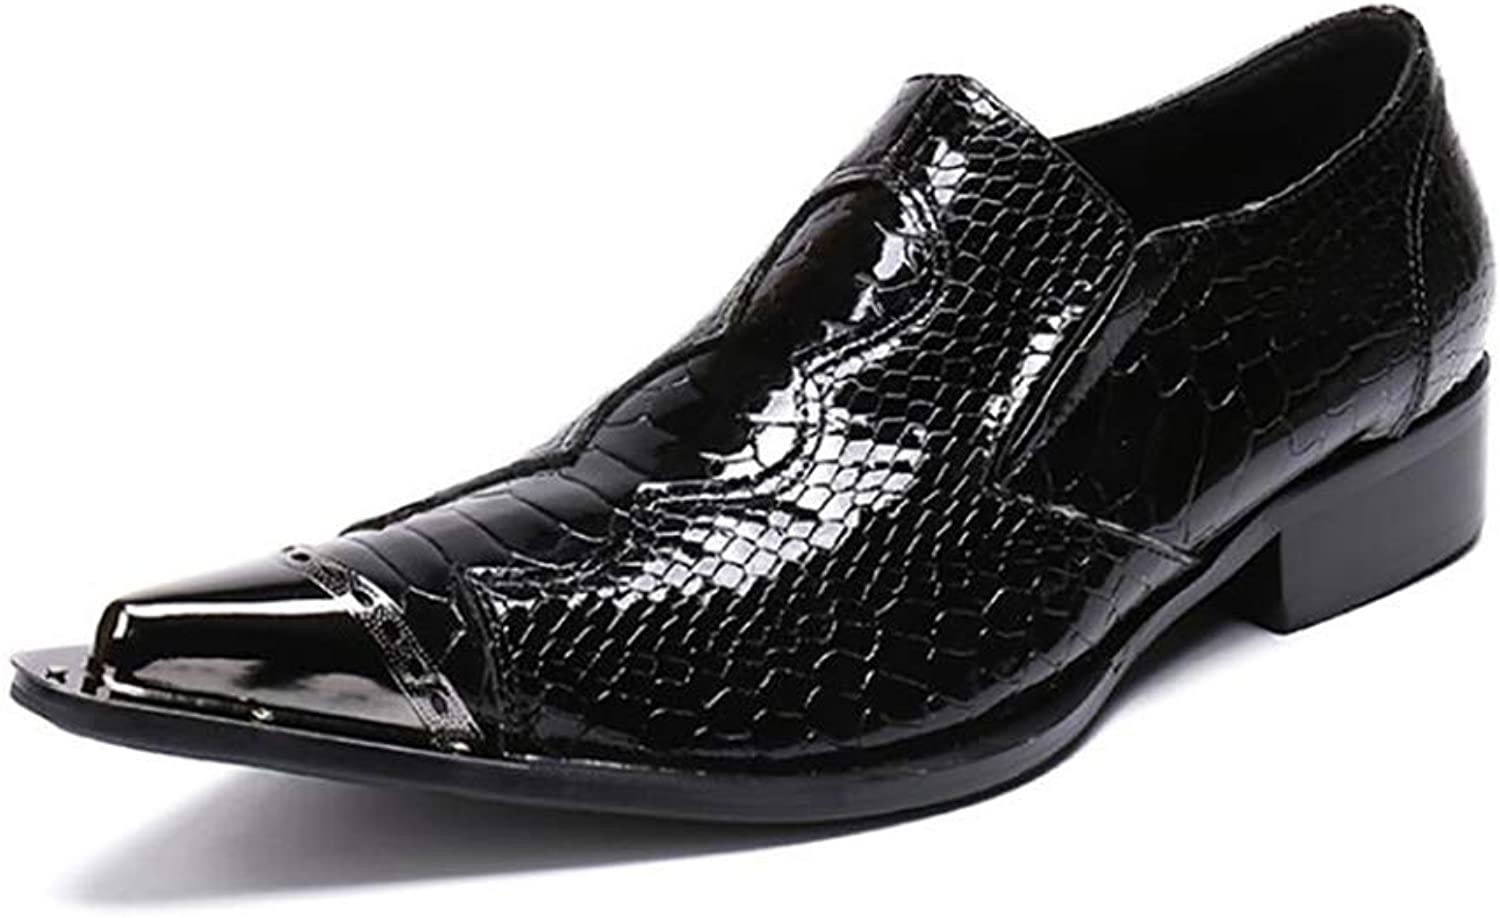 Men's shoes,Spring Fall Pointed shoes, Business Formal Dress shoes, Fashion Wedding shoes, Party & Evening (color   Black, Size   40)